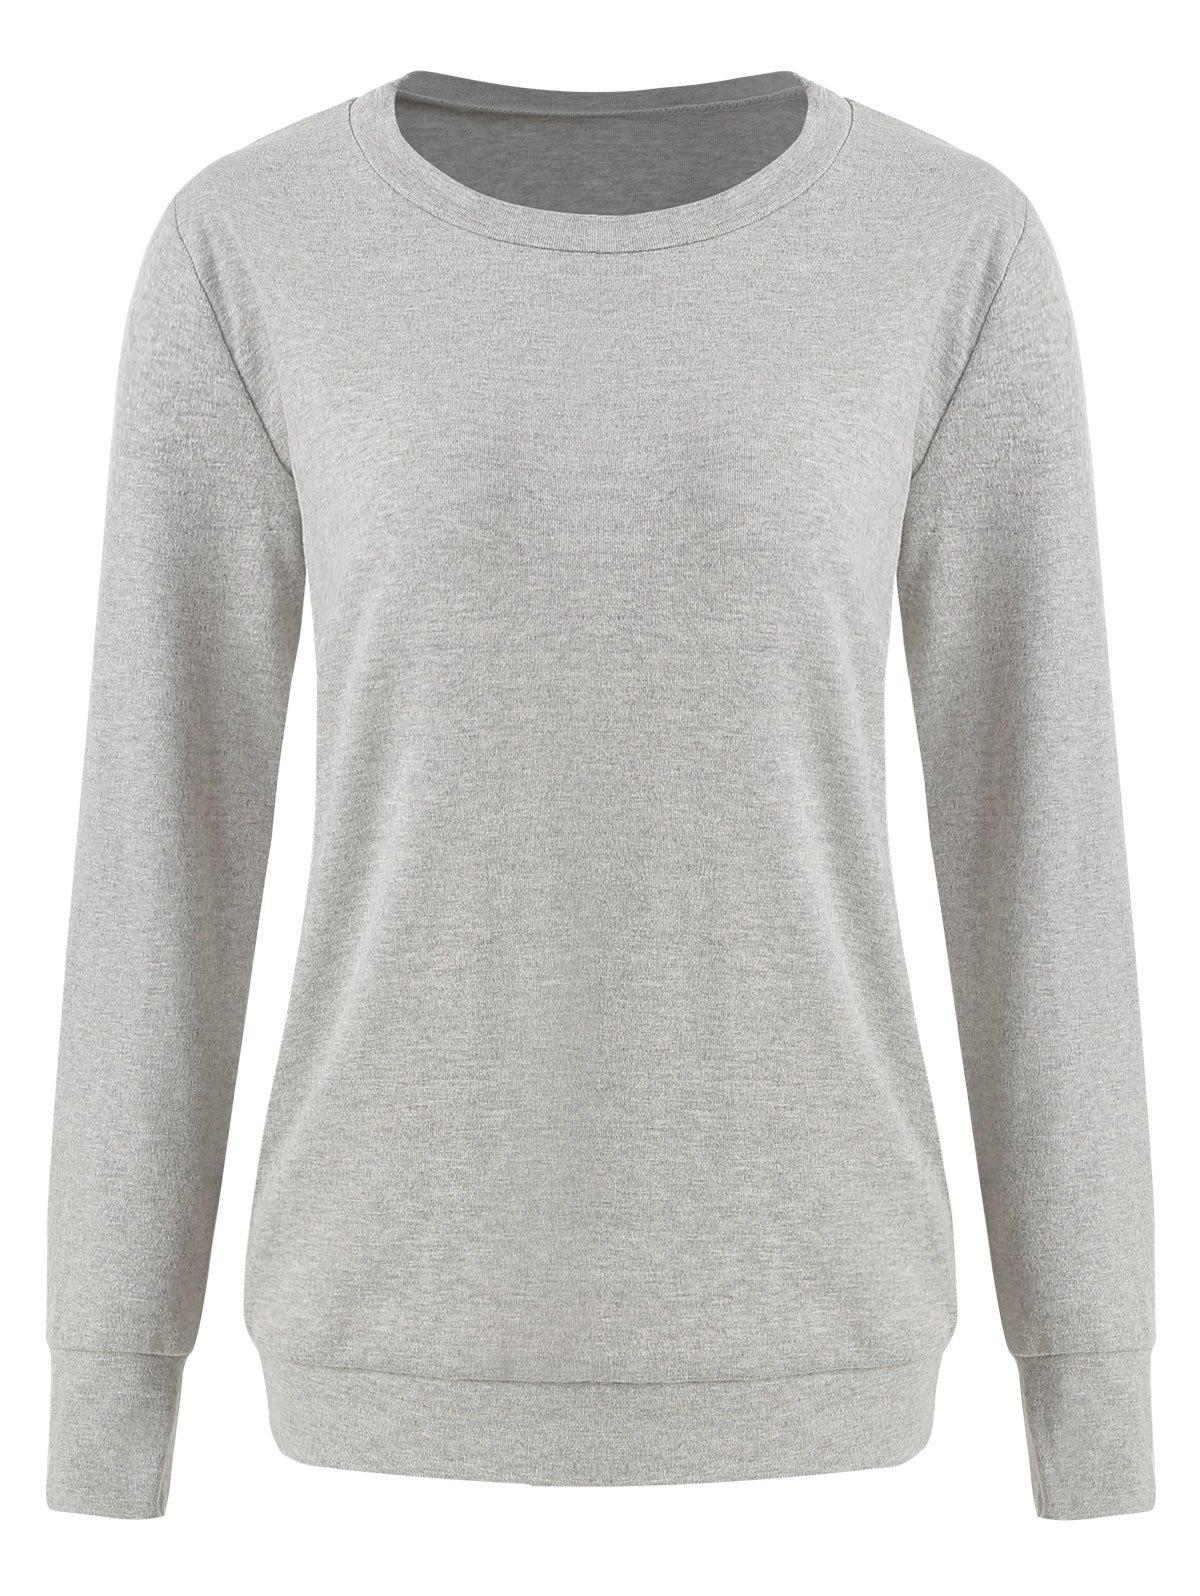 Hot Button Long Sleeve Tee